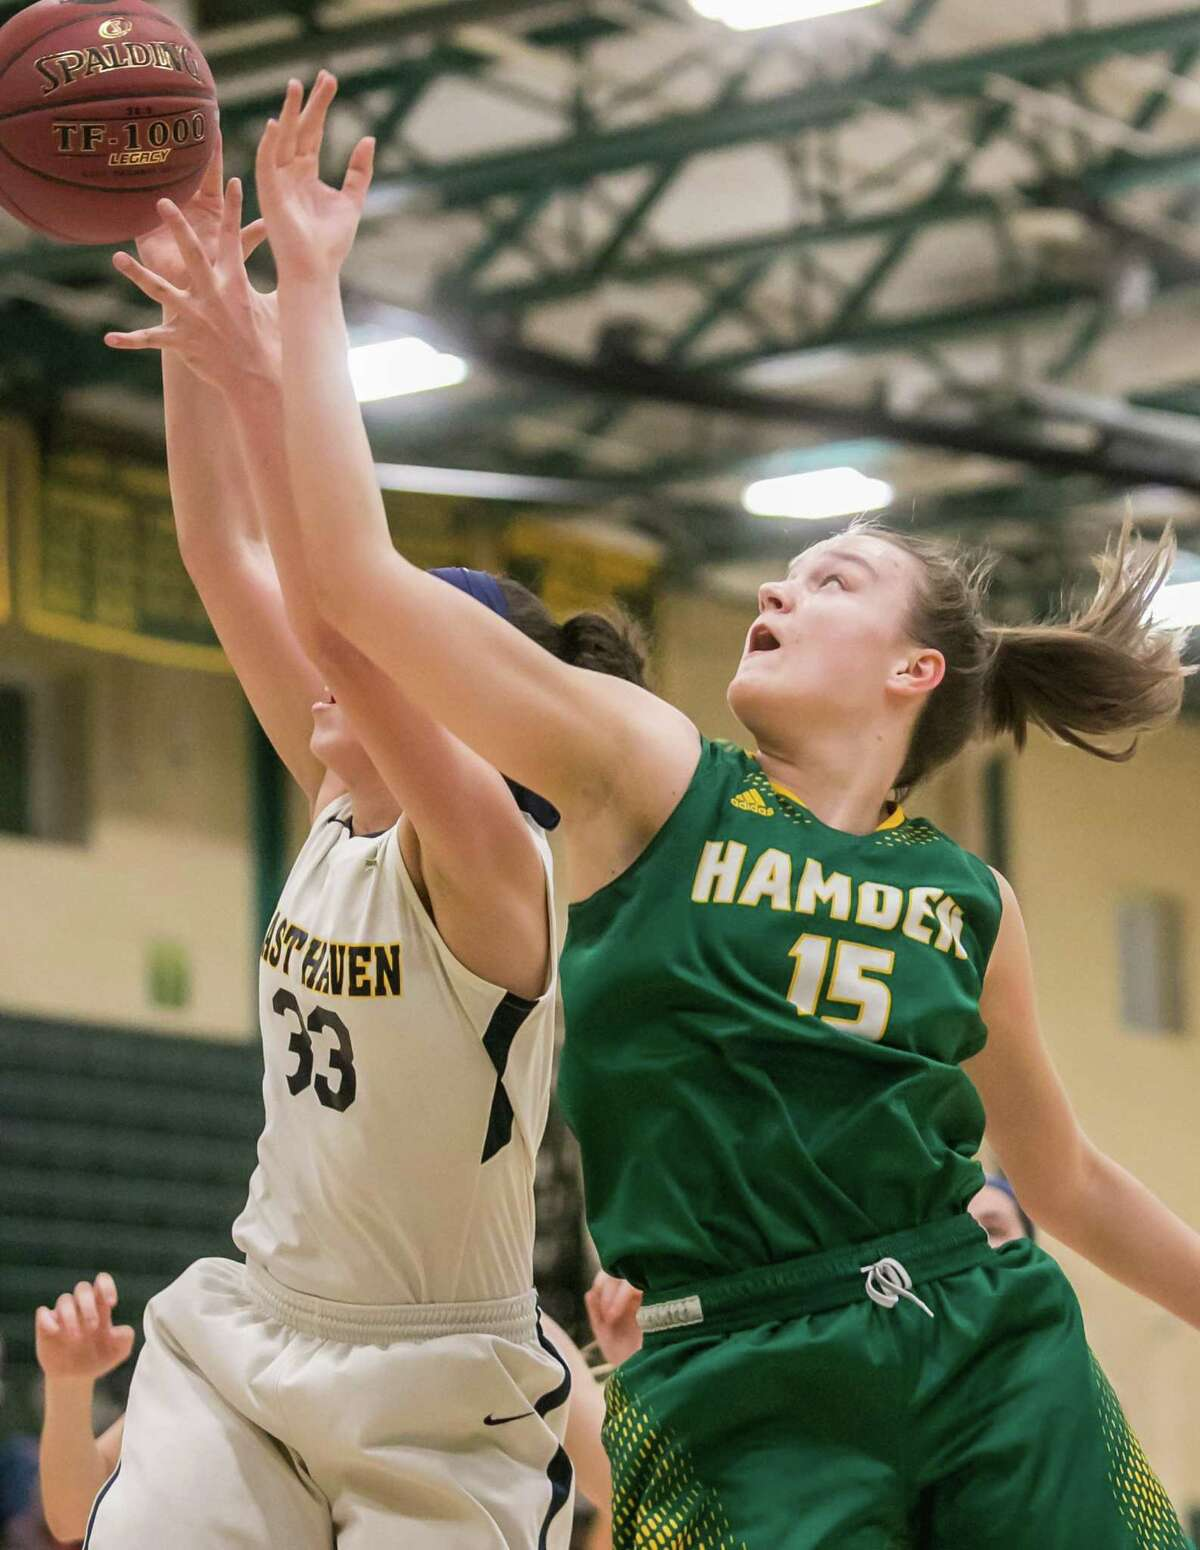 Hamden's Rebecca Oberman-Levine goes up for a rebound with East Haven's Taylor Salato during the SCC championship game on Thursday.